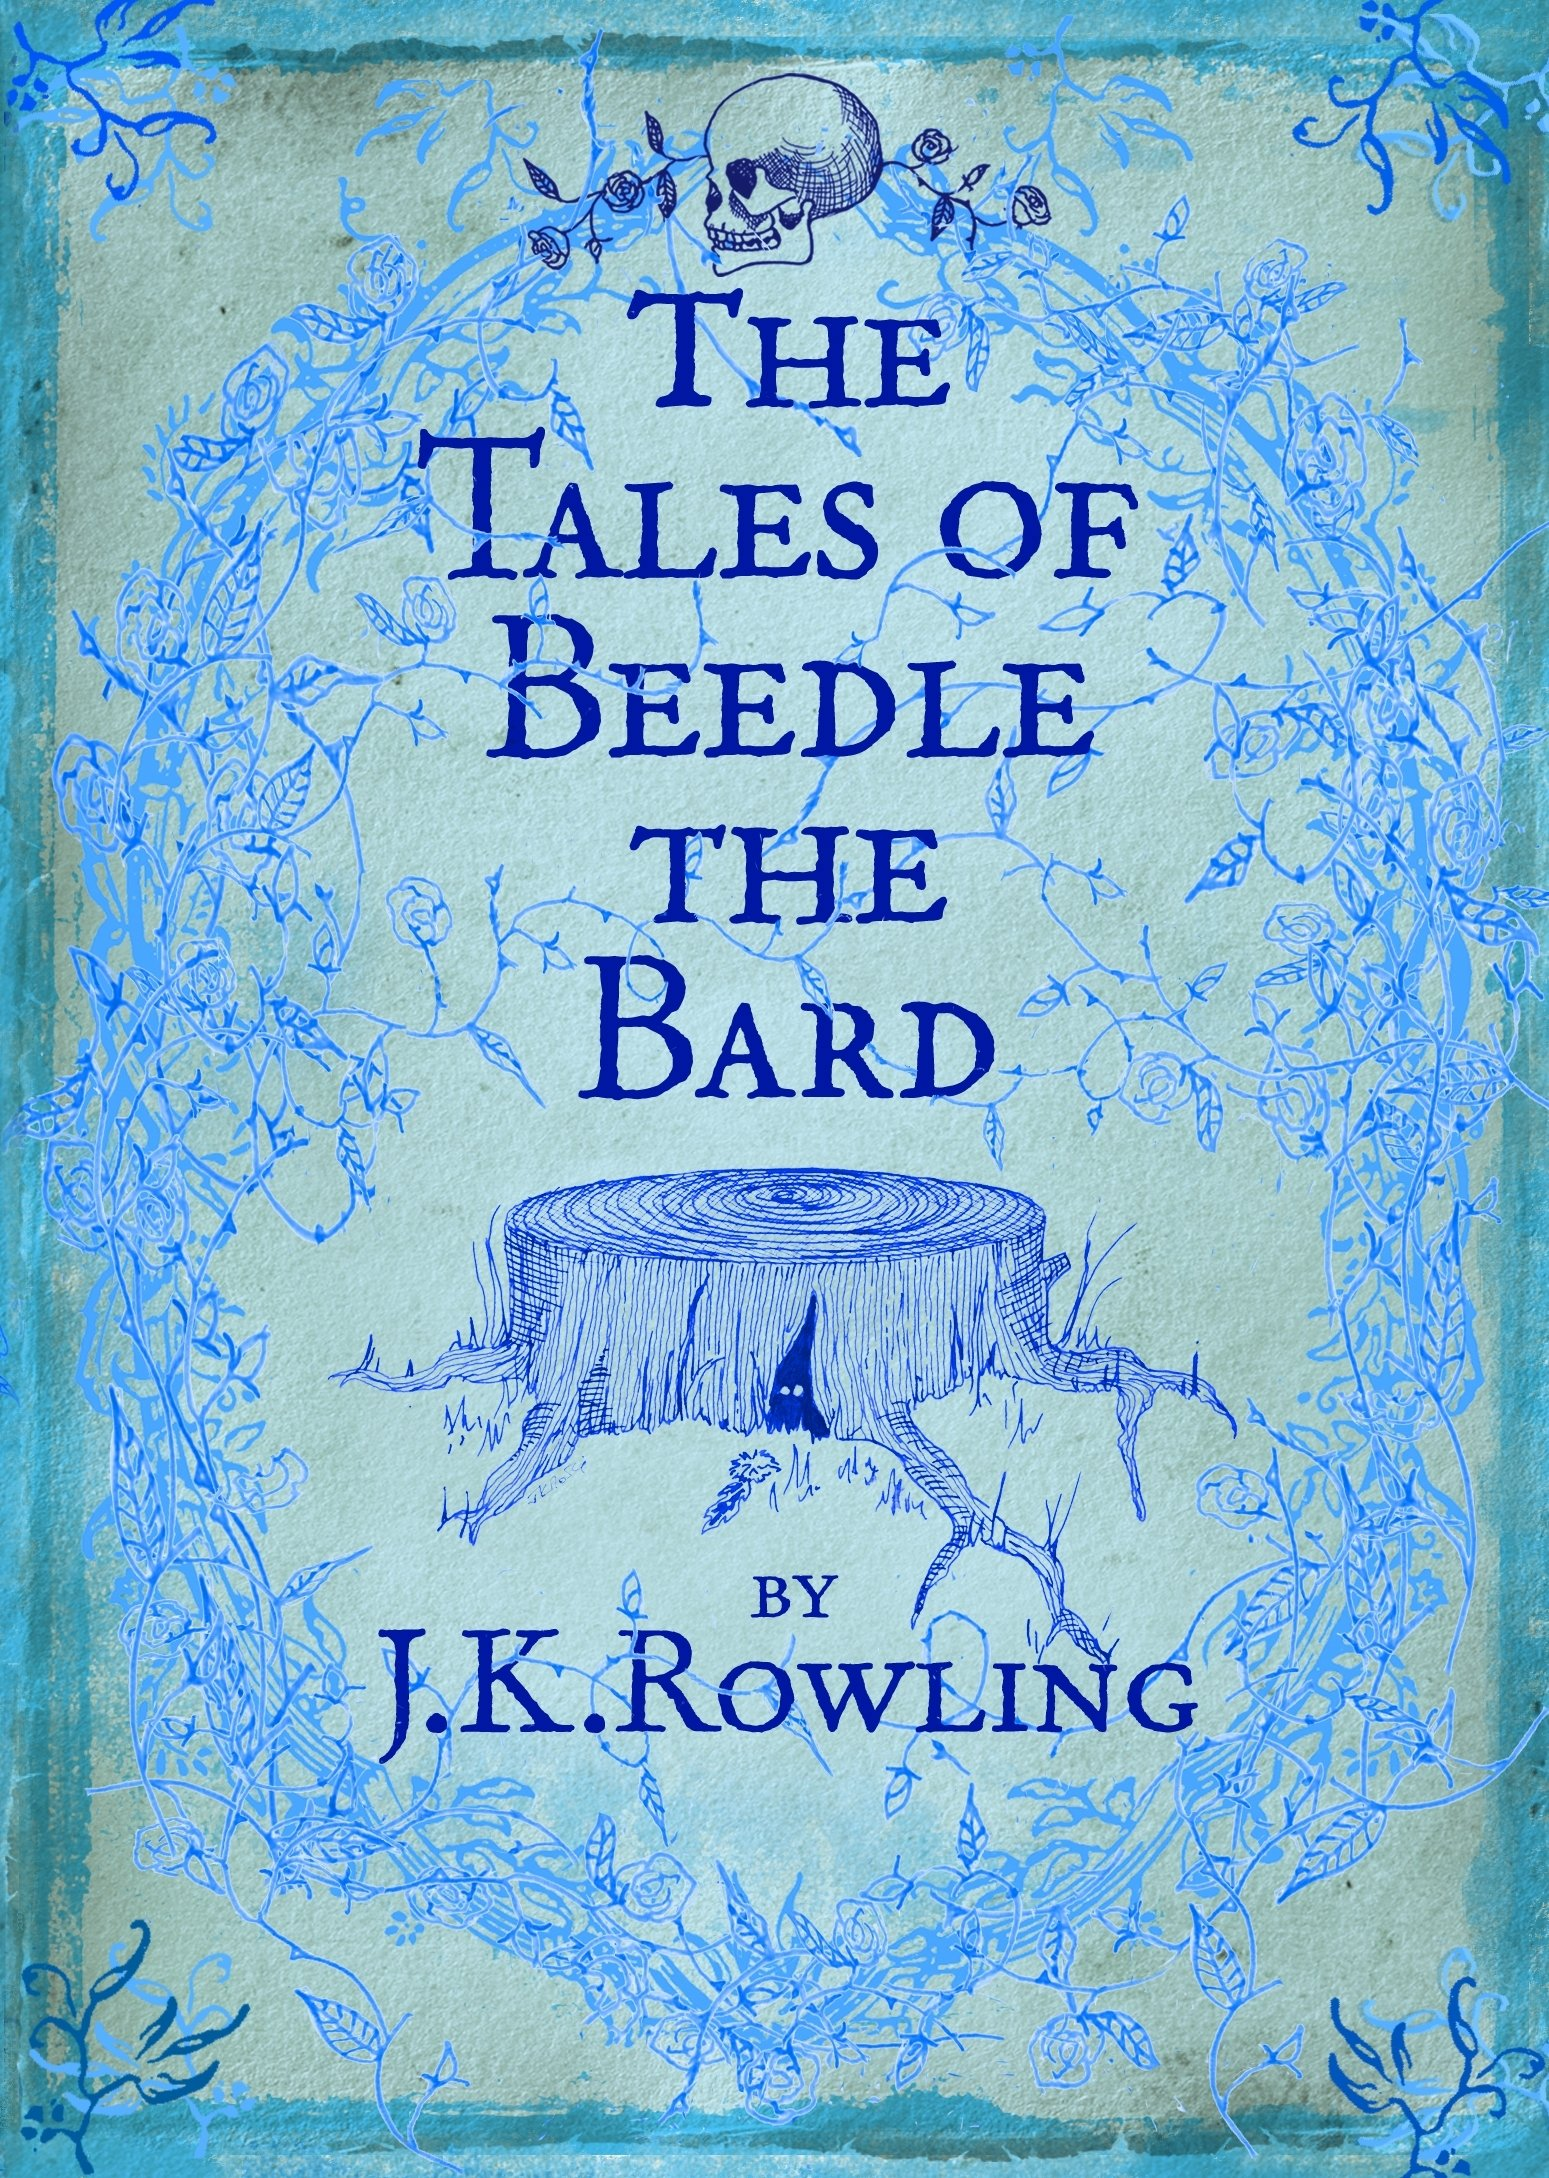 Image result for beedle the bard